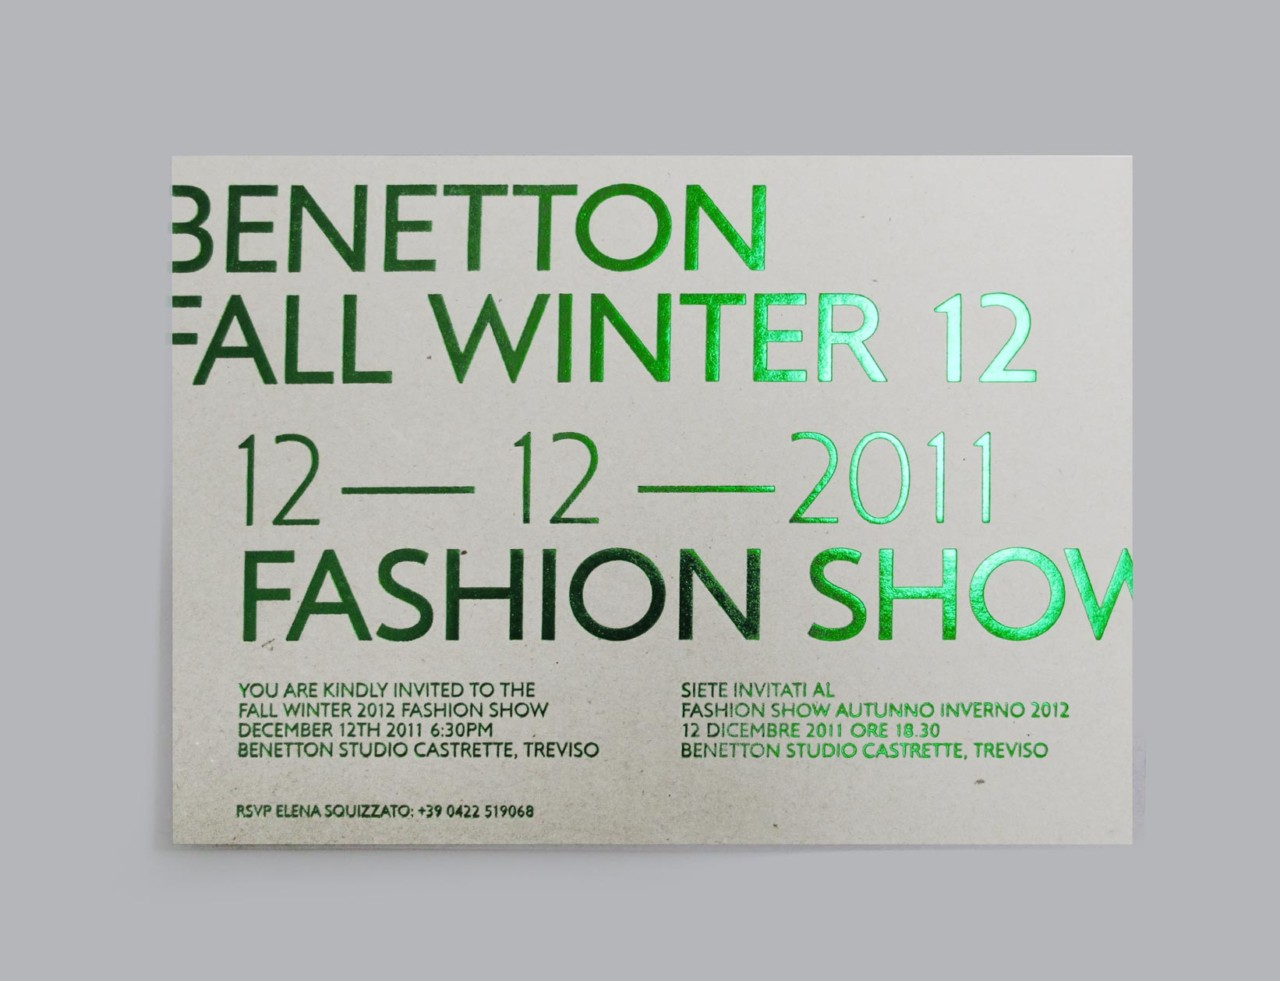 Isotype Benetton invitation